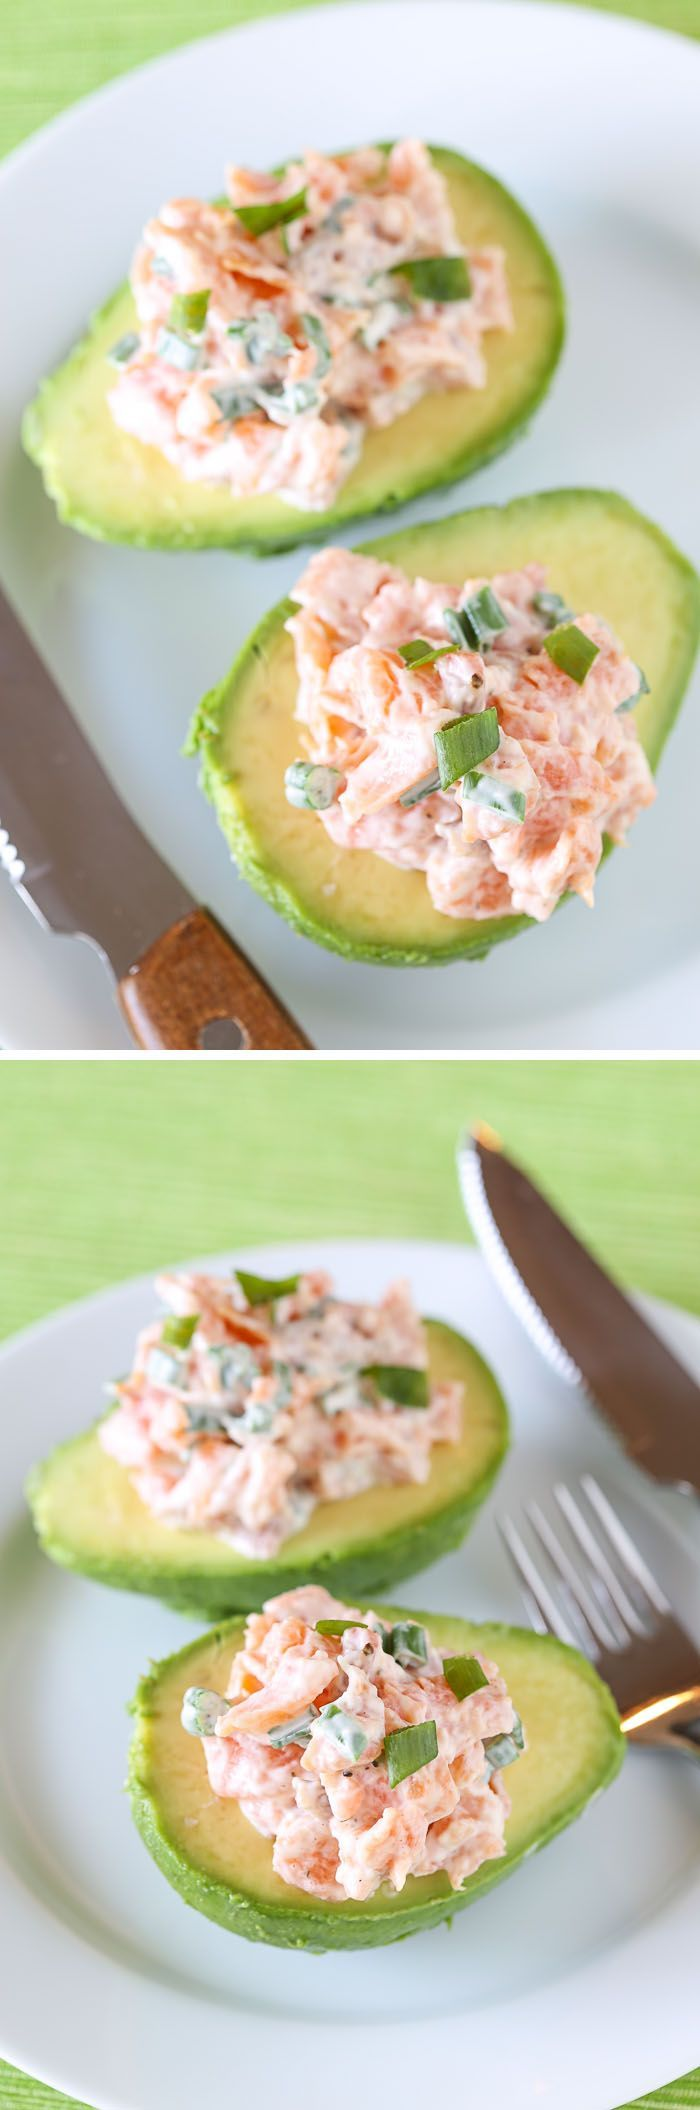 Smoked Salmon Salad in Avocado Boats #salmon #avocado #lunch